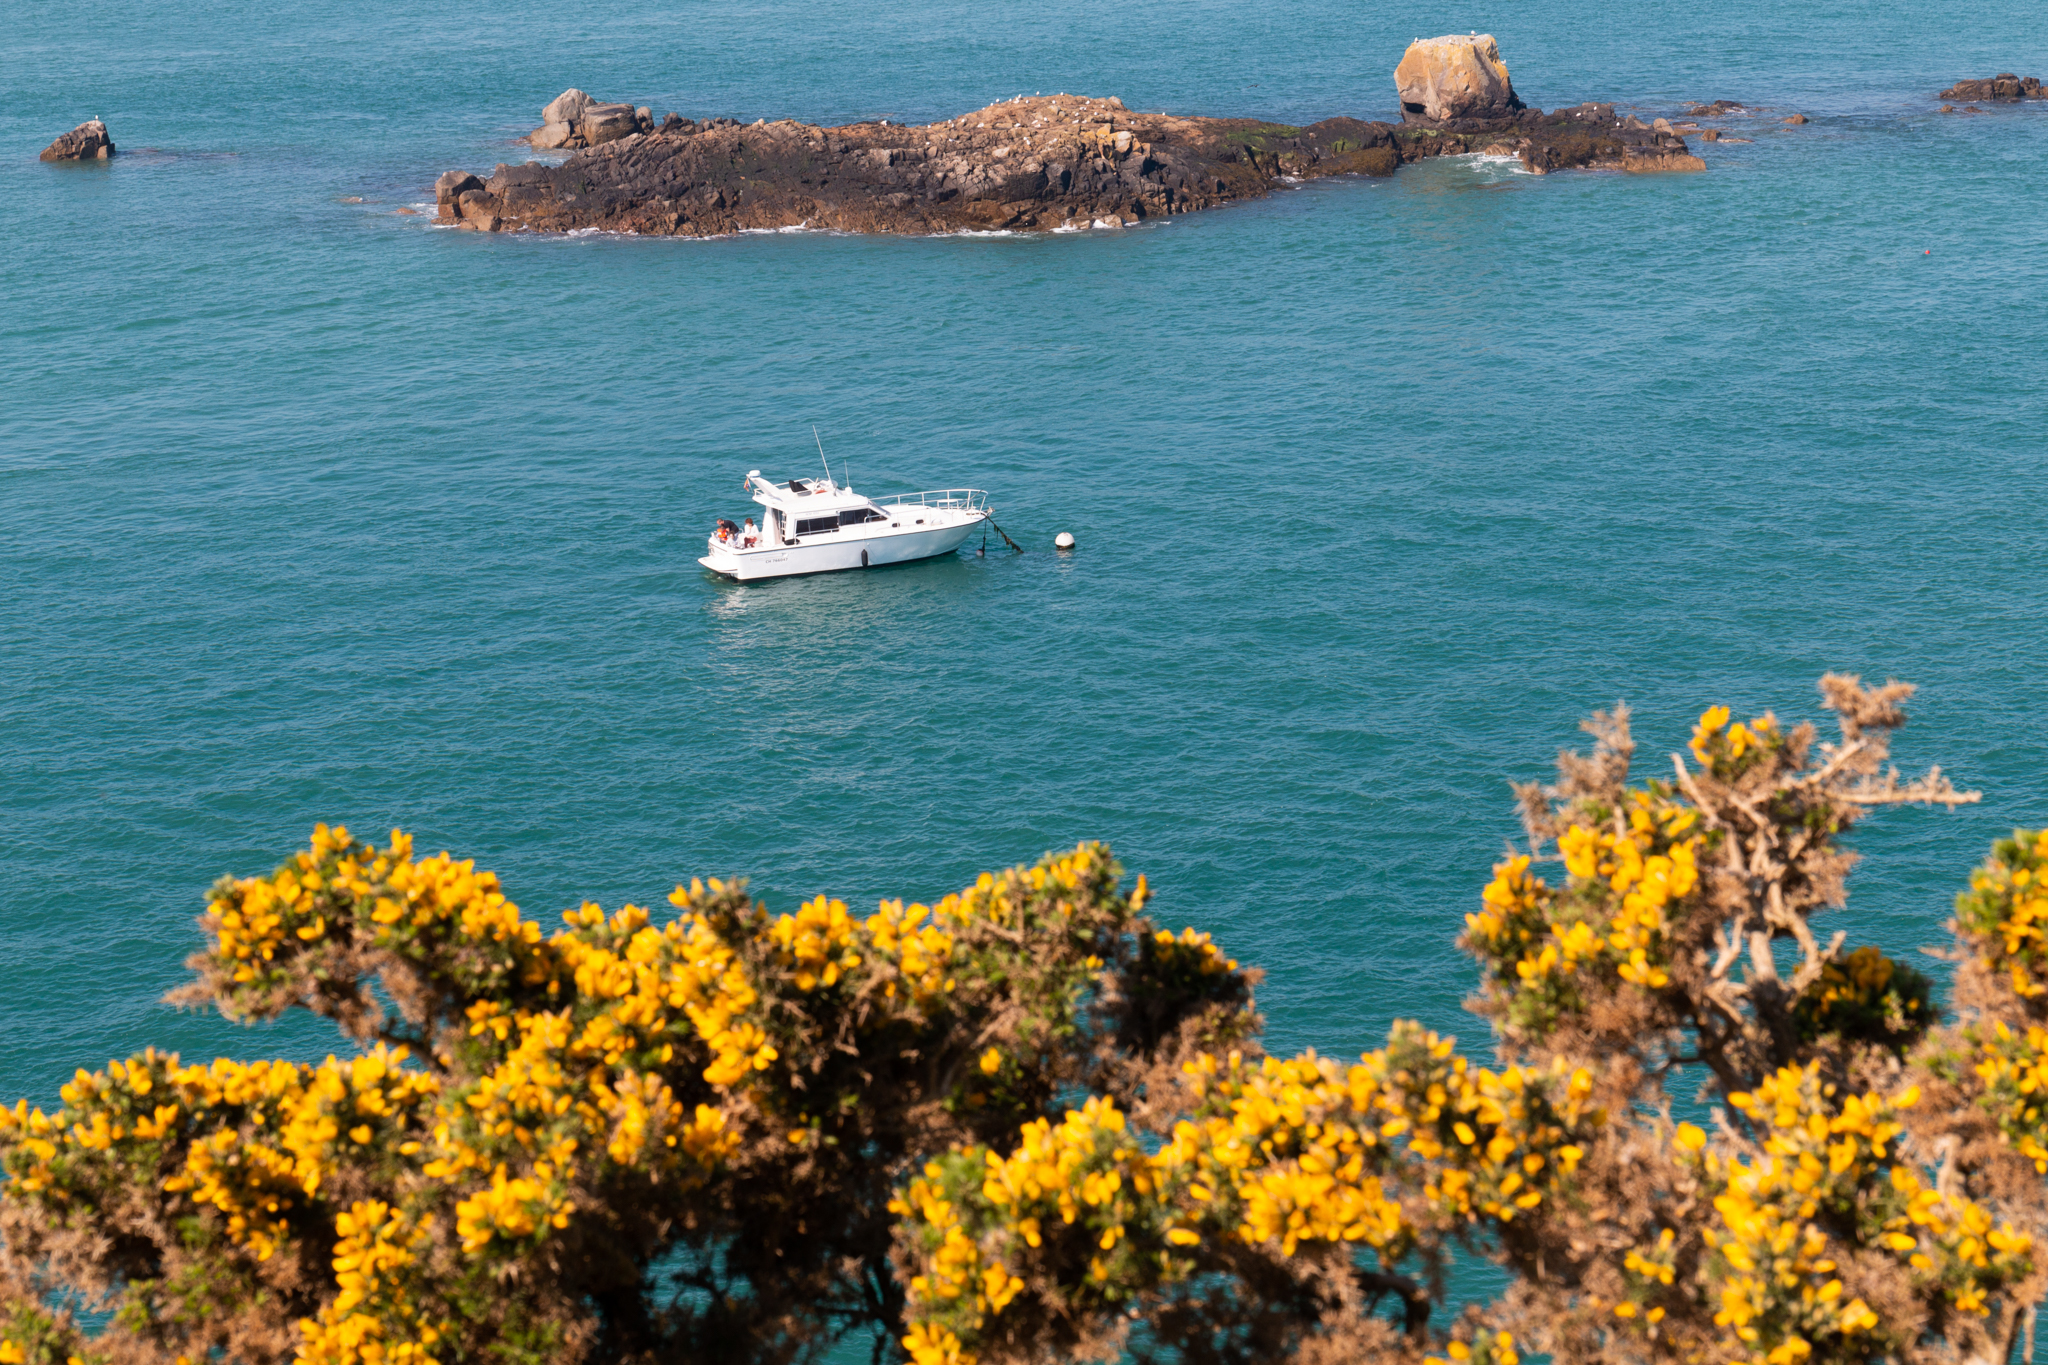 Herm, Guernsey, Channel Islands | Ciao Fabello